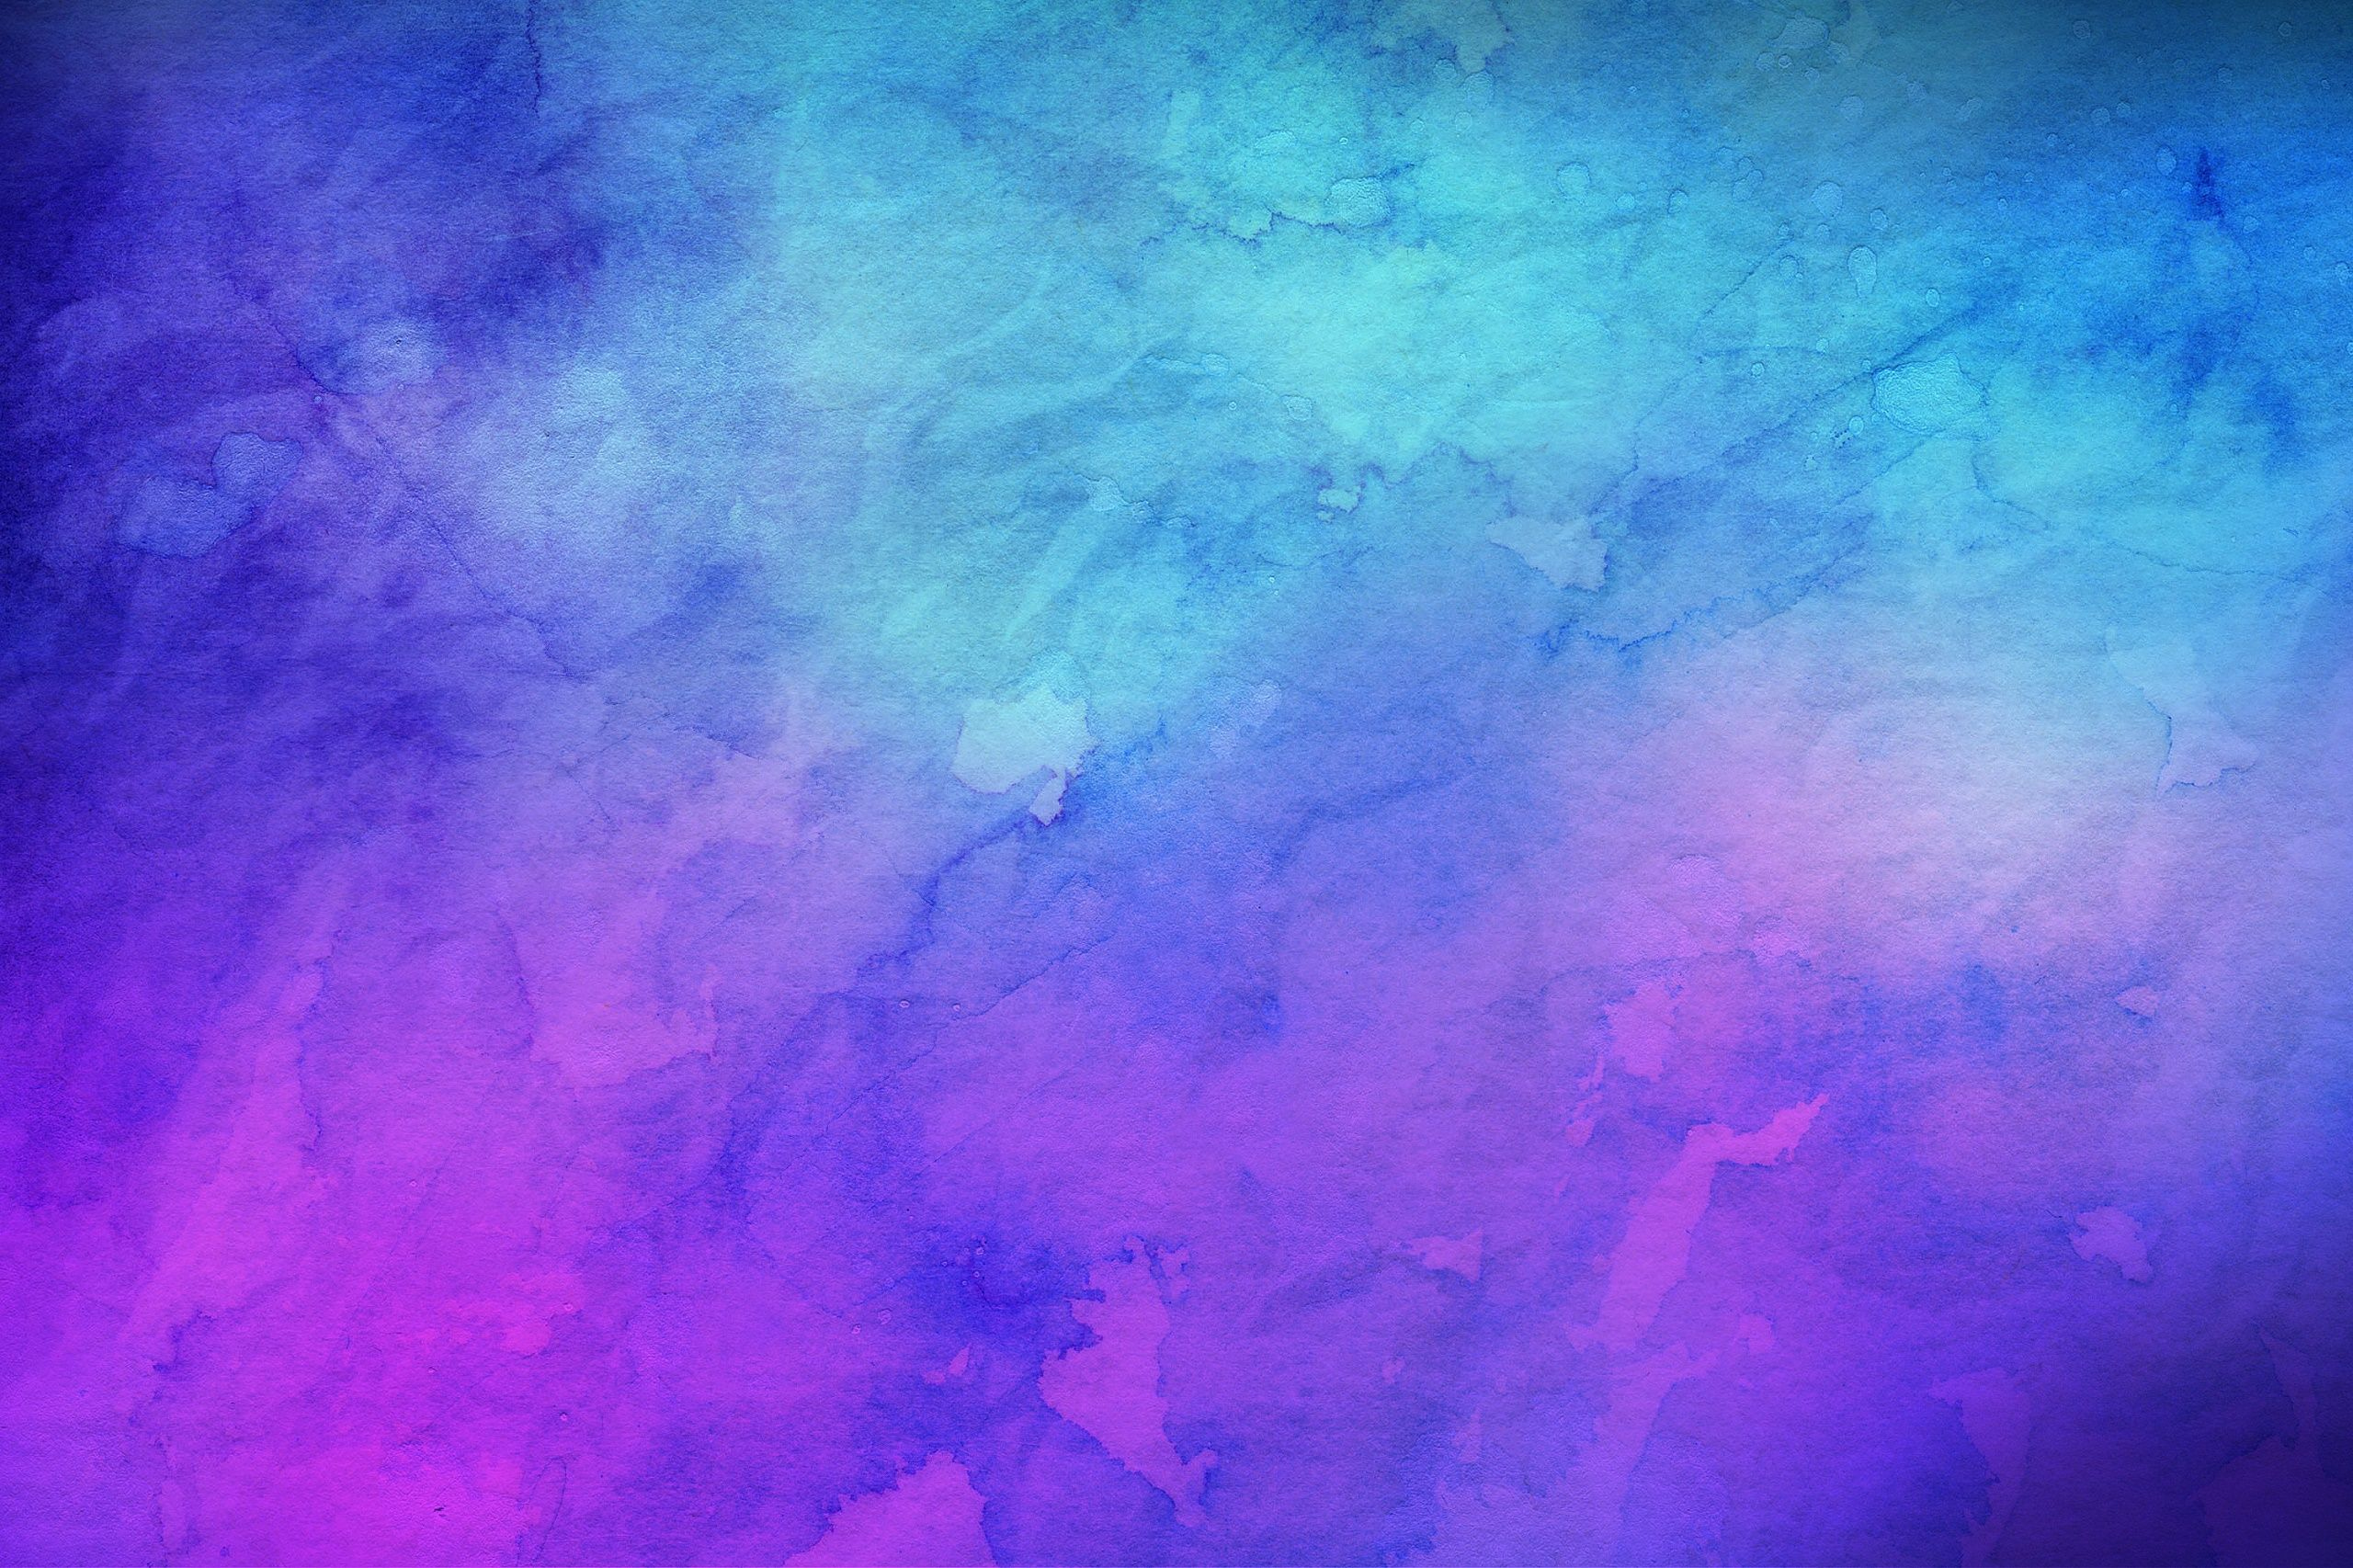 1 87 Mb 2560x1706 Px Water Color Watercolor Background Blue